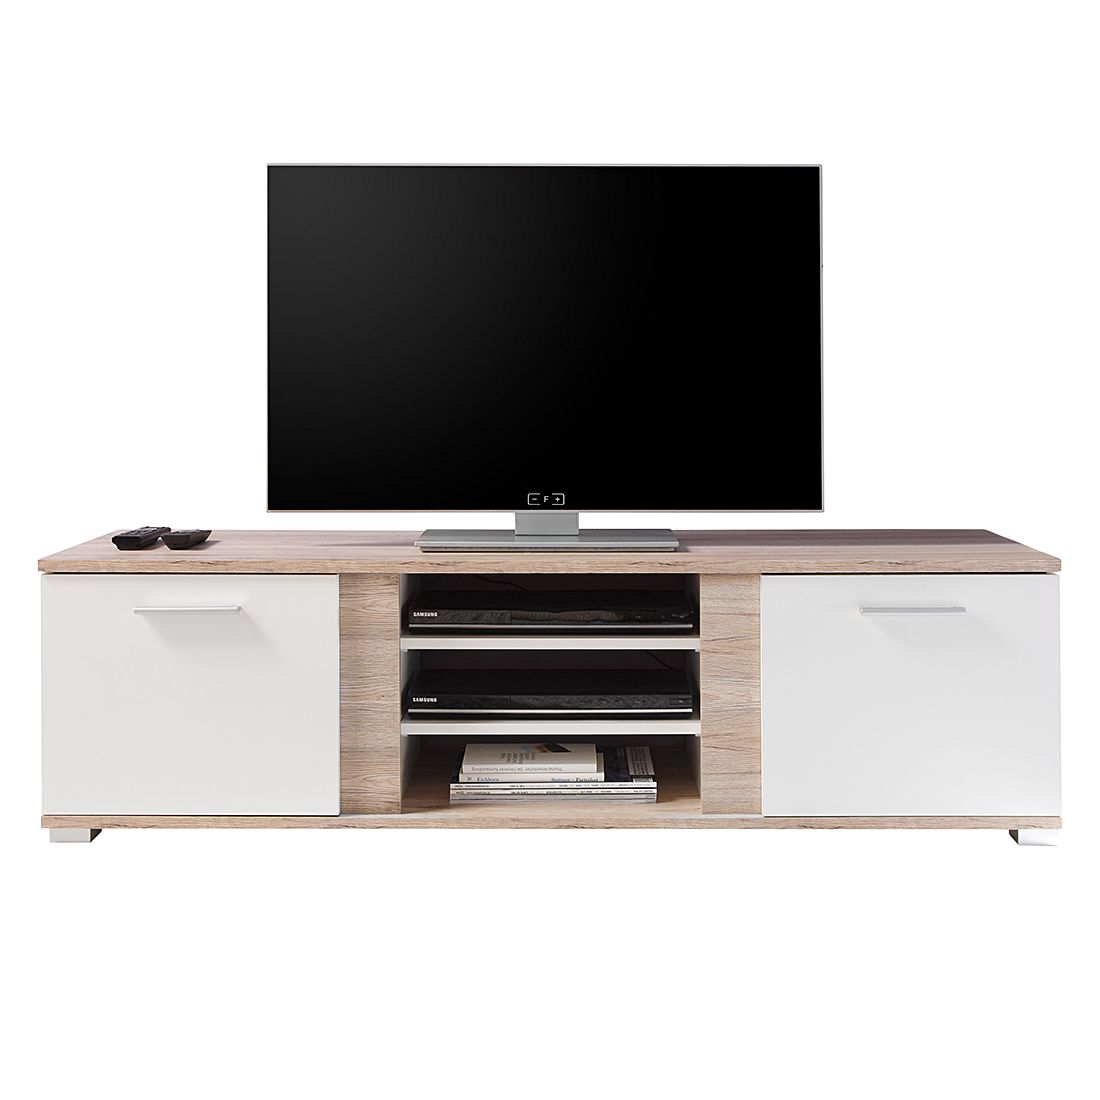 tv lowboard creston ii eiche sanremo dekor wei modoform jetzt kaufen. Black Bedroom Furniture Sets. Home Design Ideas